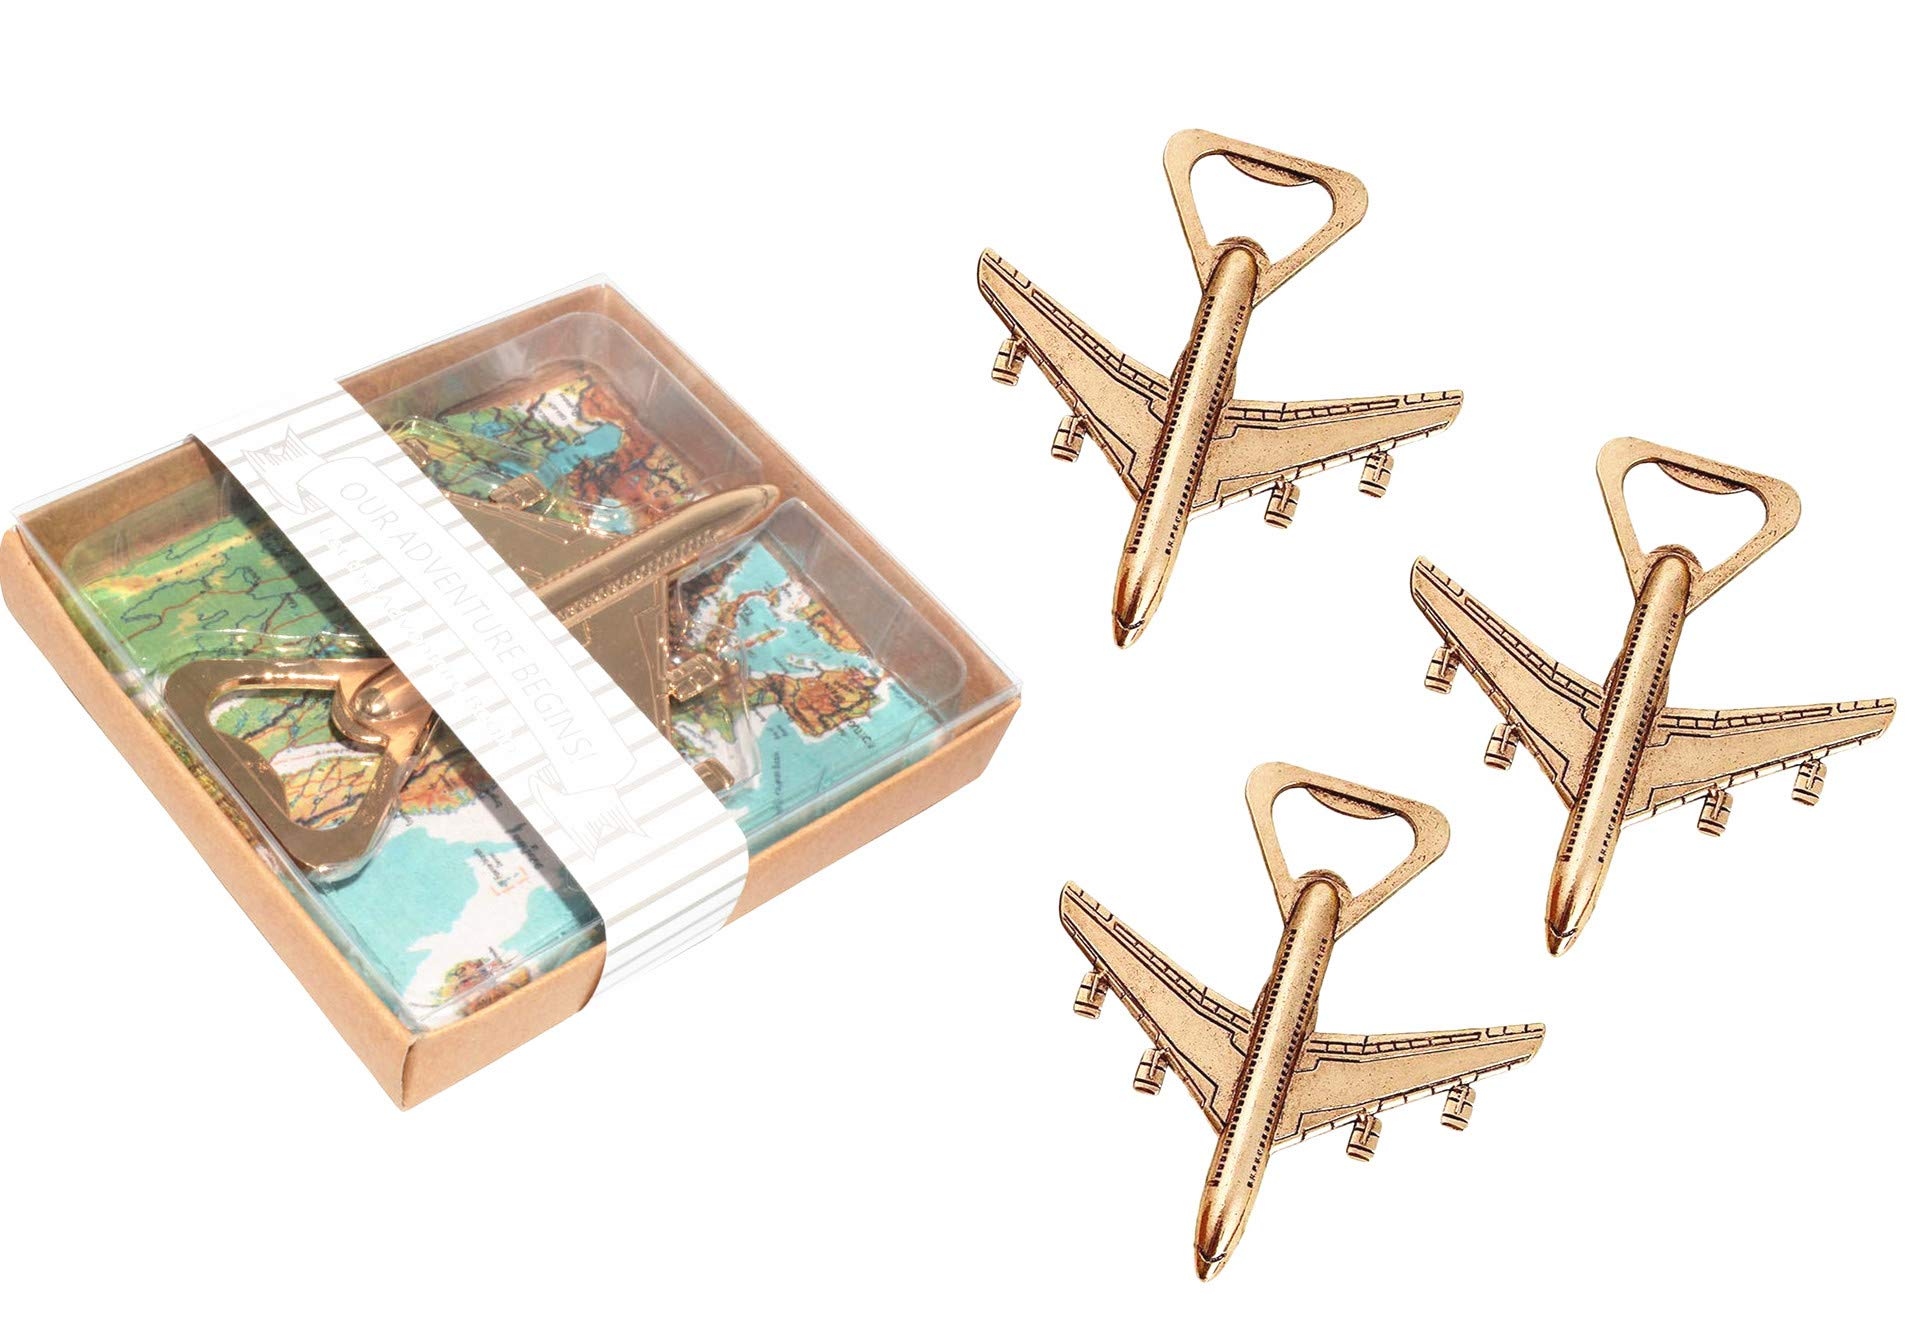 Pack of 24 Airplane Bottle Opener with Gift Box Baby Shower Return Gifts for Guest Air Plane Travel Beer Bottle Opener Party Favor Wedding Birthday Decorations (24pcs with Gift Box) by Yansanido